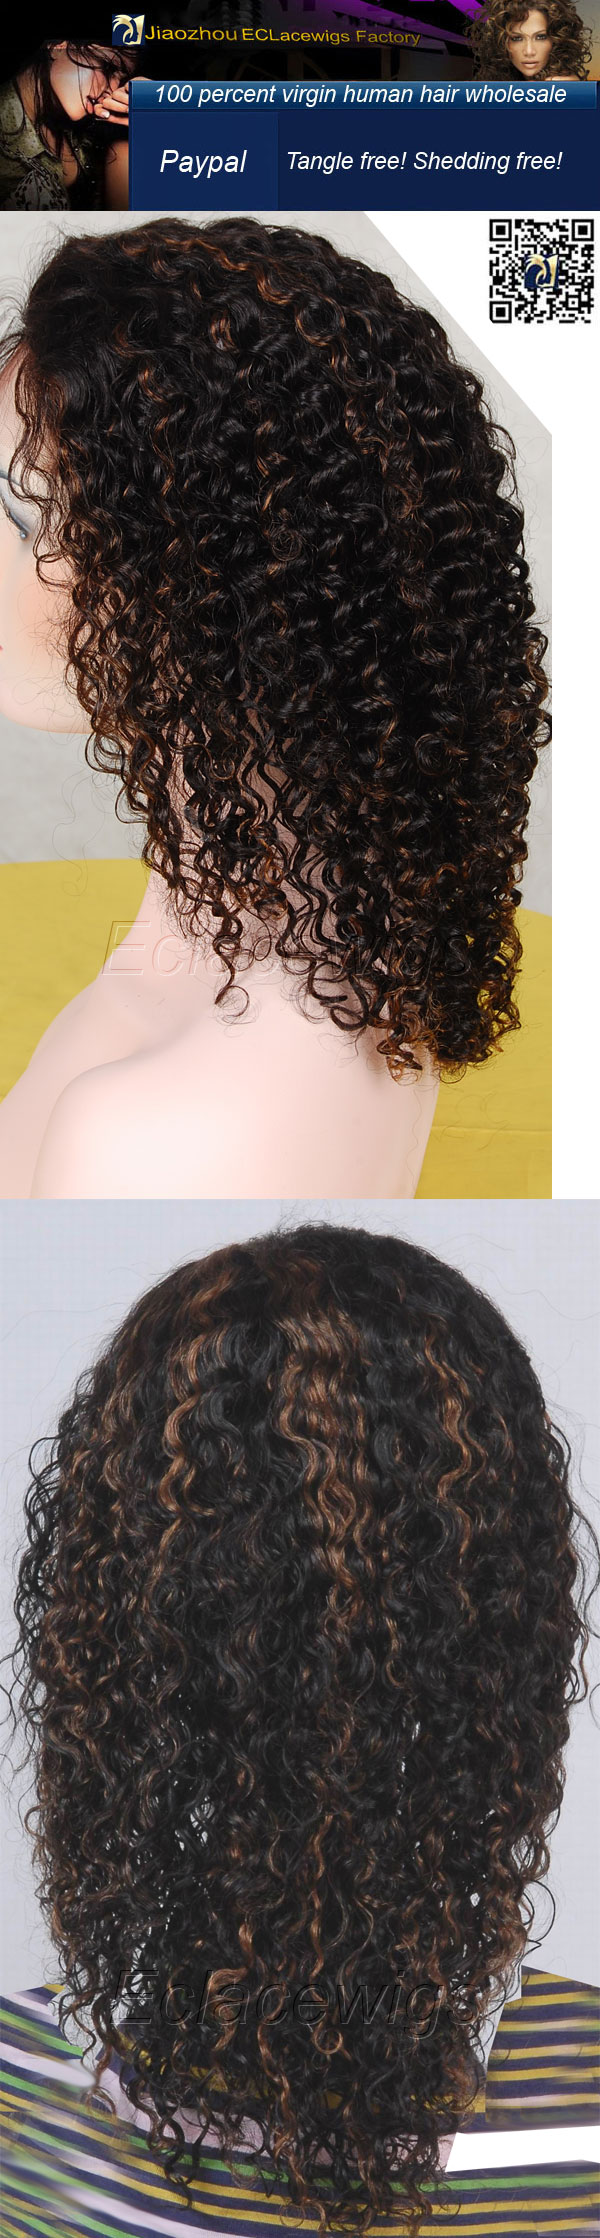 kinky curl highlight human hair wigs